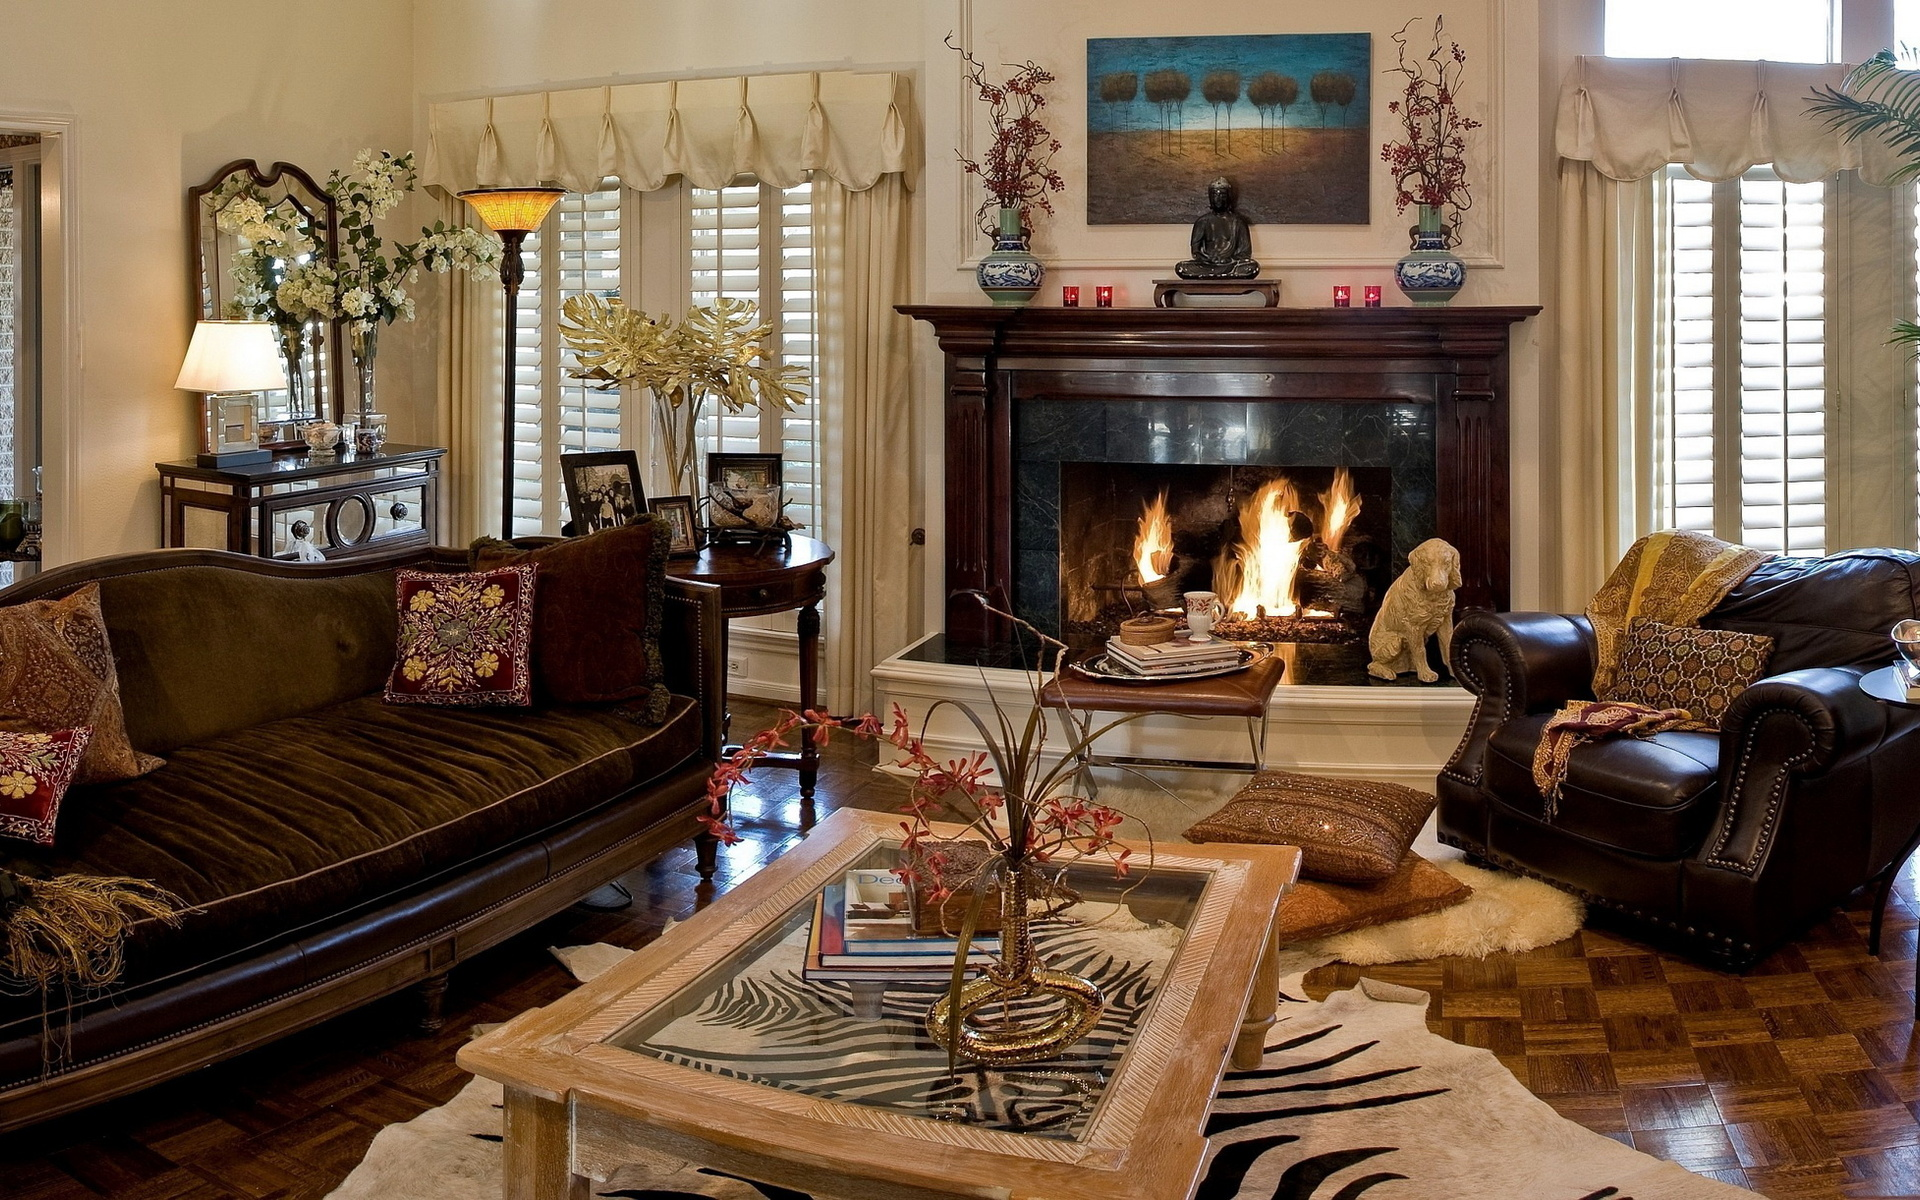 Interior fireplace sofas chairs living room room design for Living room seats designs